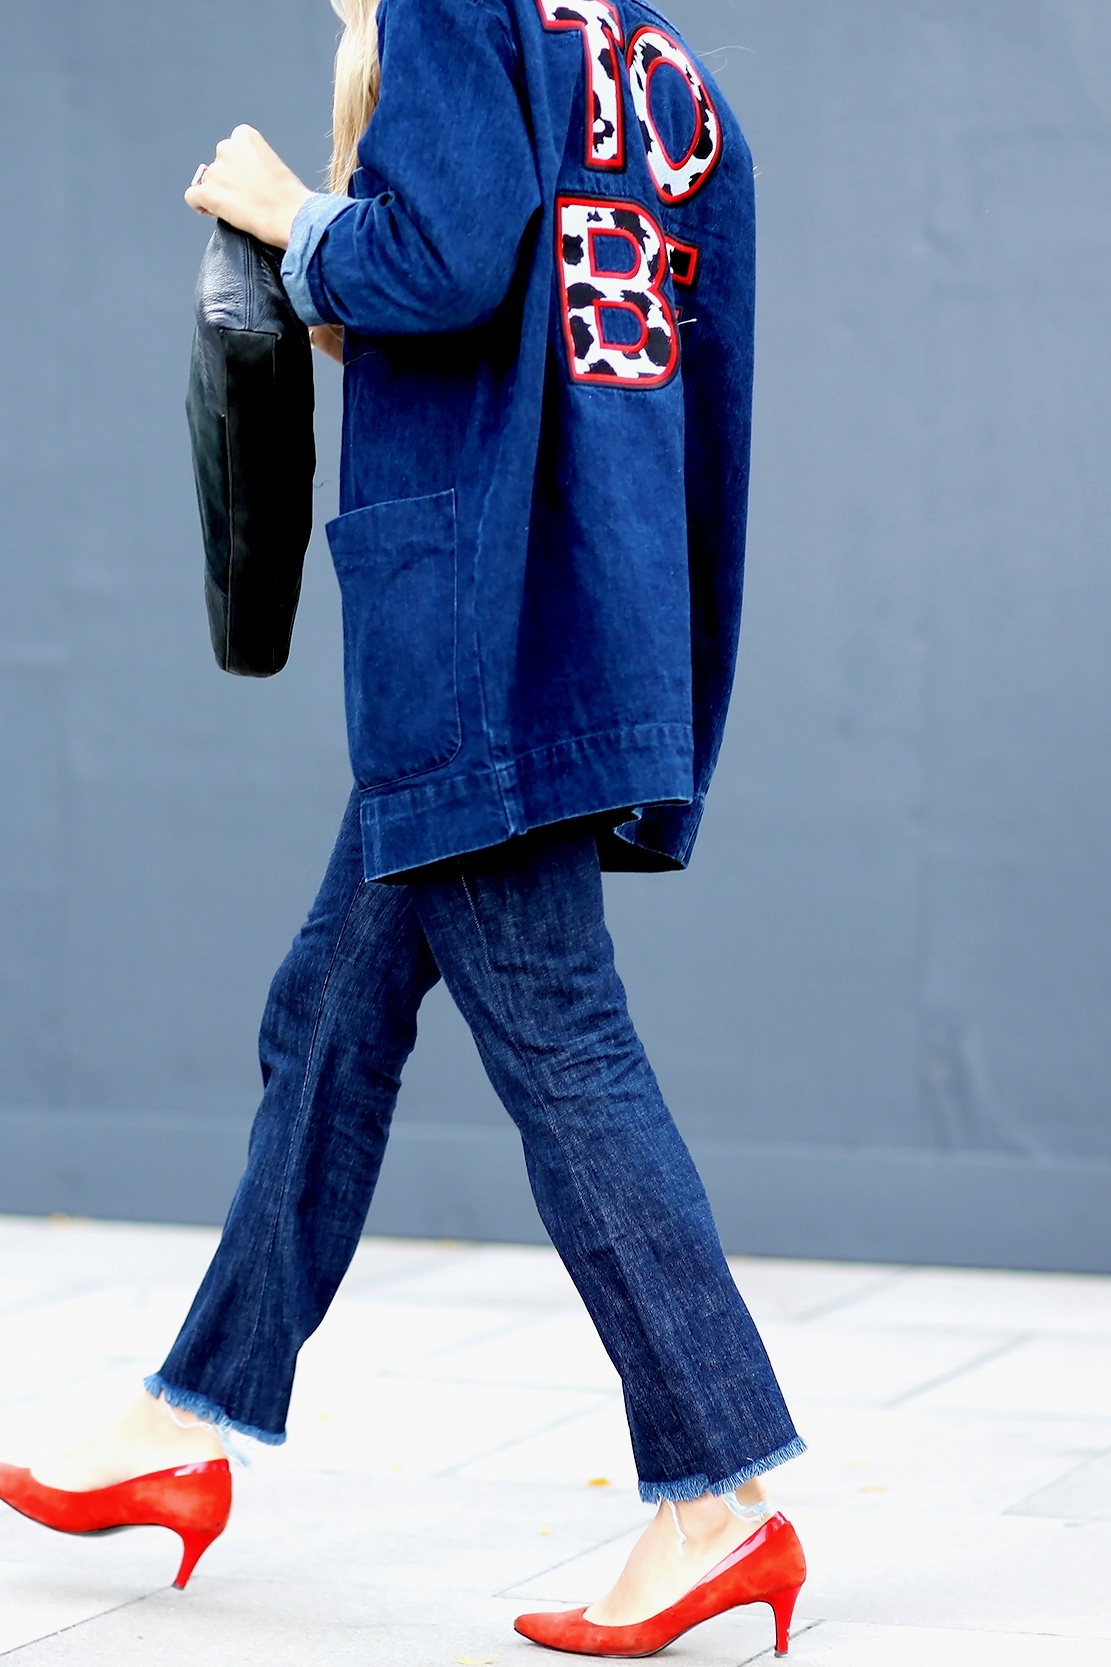 london_streetstyle_jessiebush13.jpg